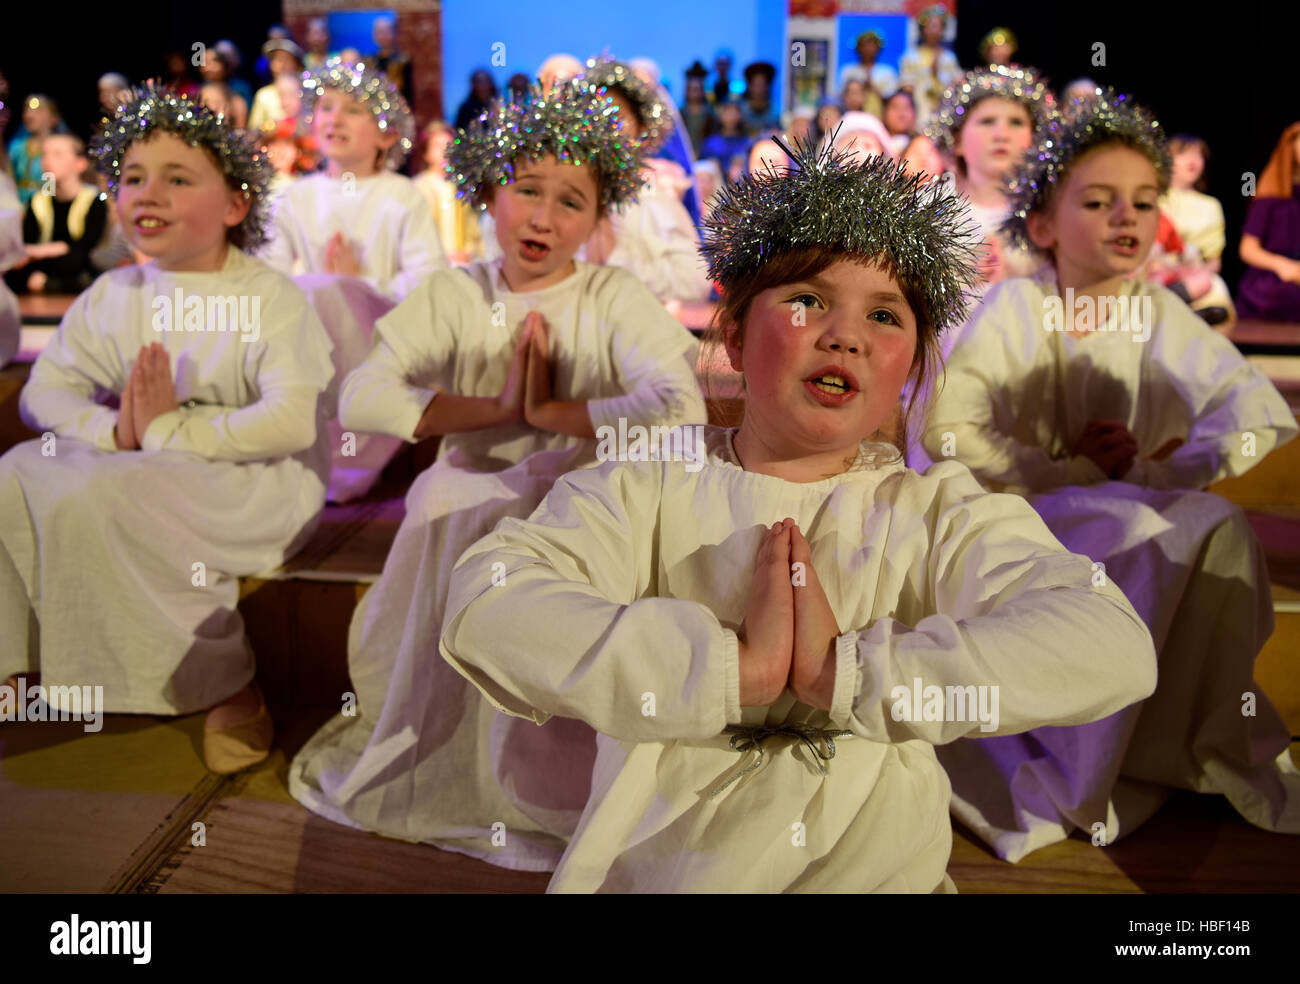 Junior school pupil's in a scene from their 2016 Christmas school play, Hampshire, UK. - Stock Image